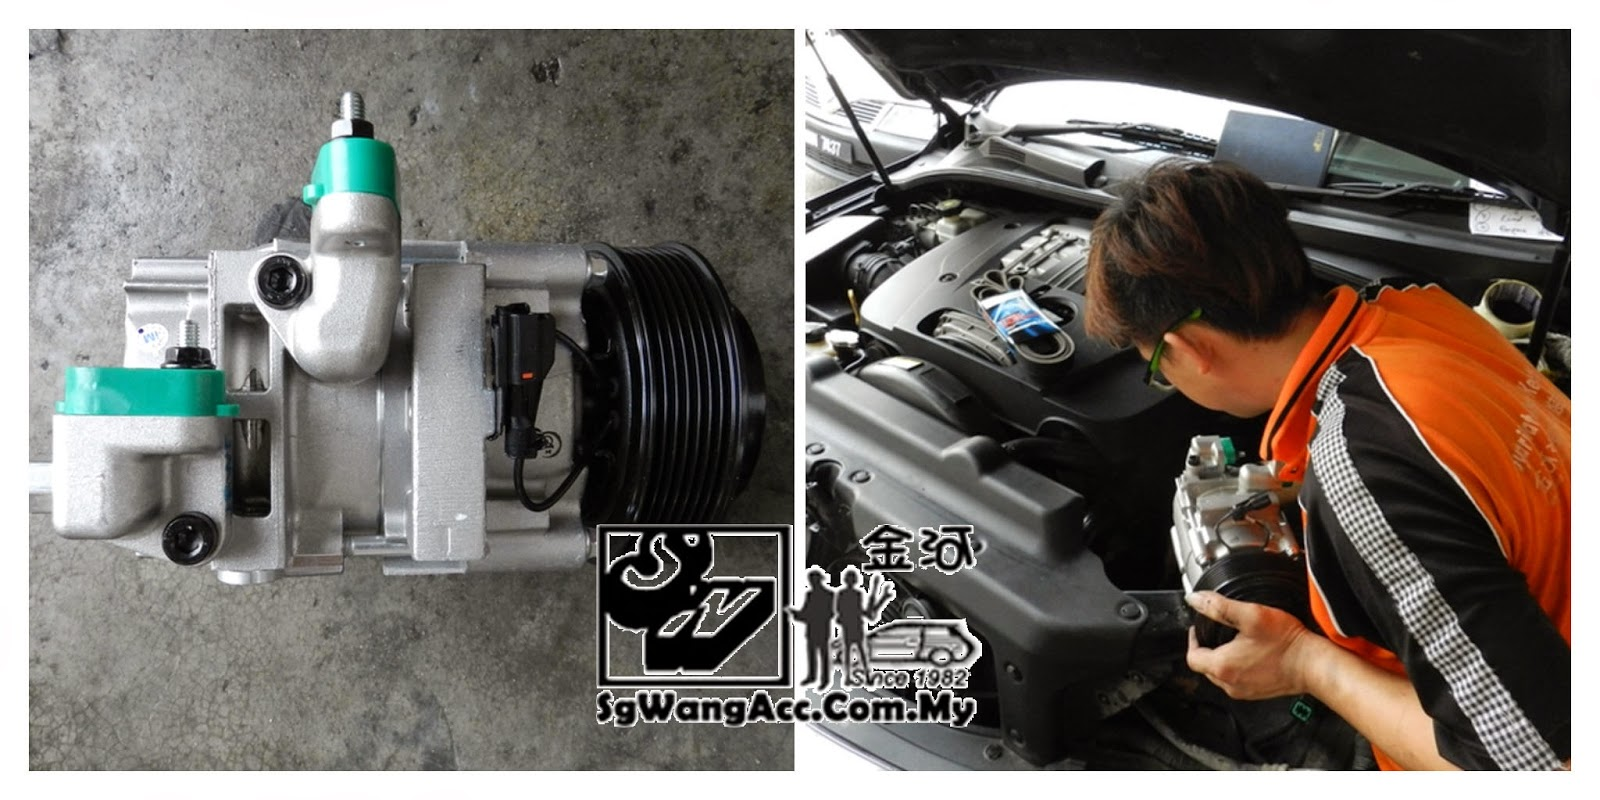 hight resolution of  wts car air cond consultation solution service